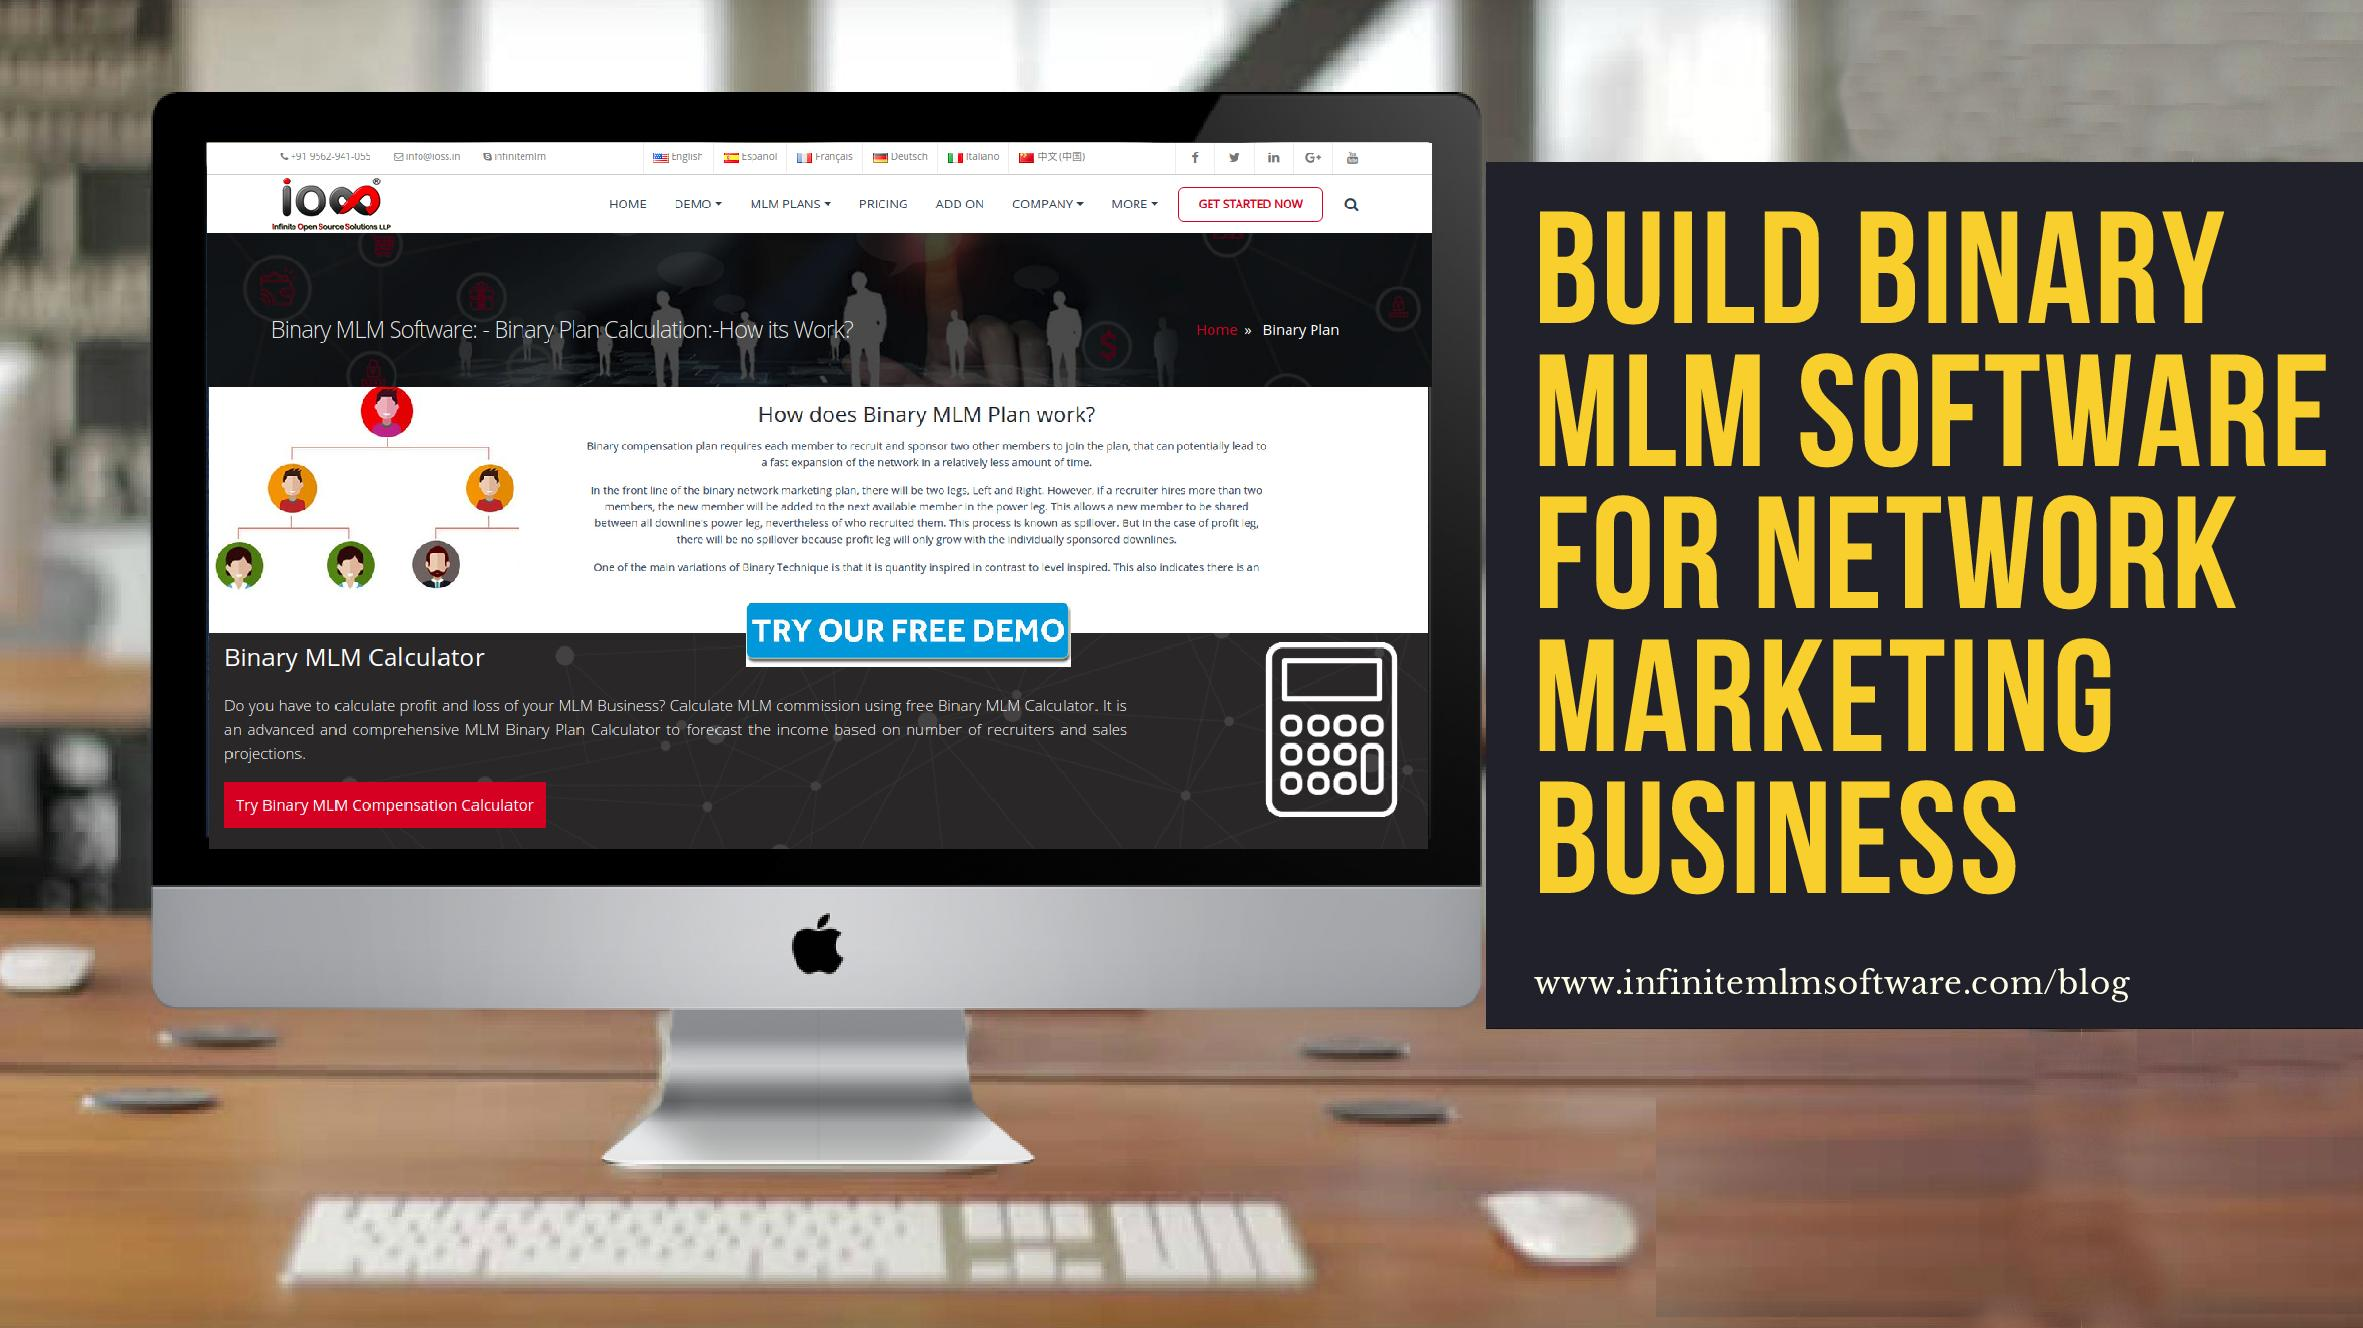 Binary MLM Software for Network Marketing